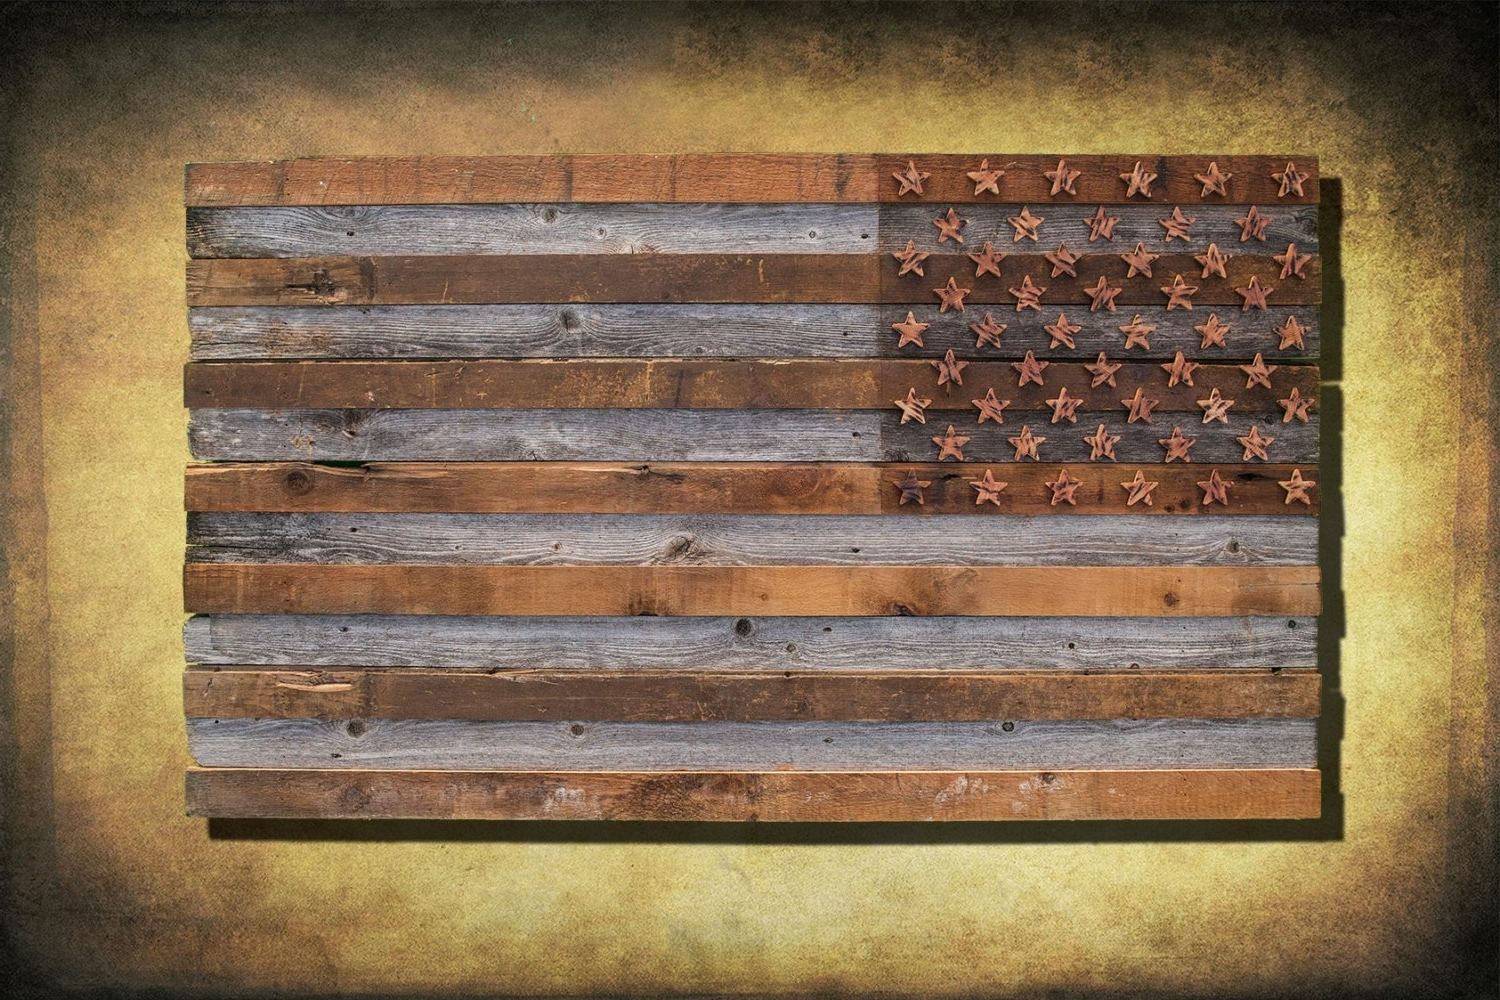 Famous Barnwood American Flag, 100 Year Old Wood, One Of A Kind, 3D, Wooden Pertaining To Vintage American Flag Wall Art (View 2 of 15)